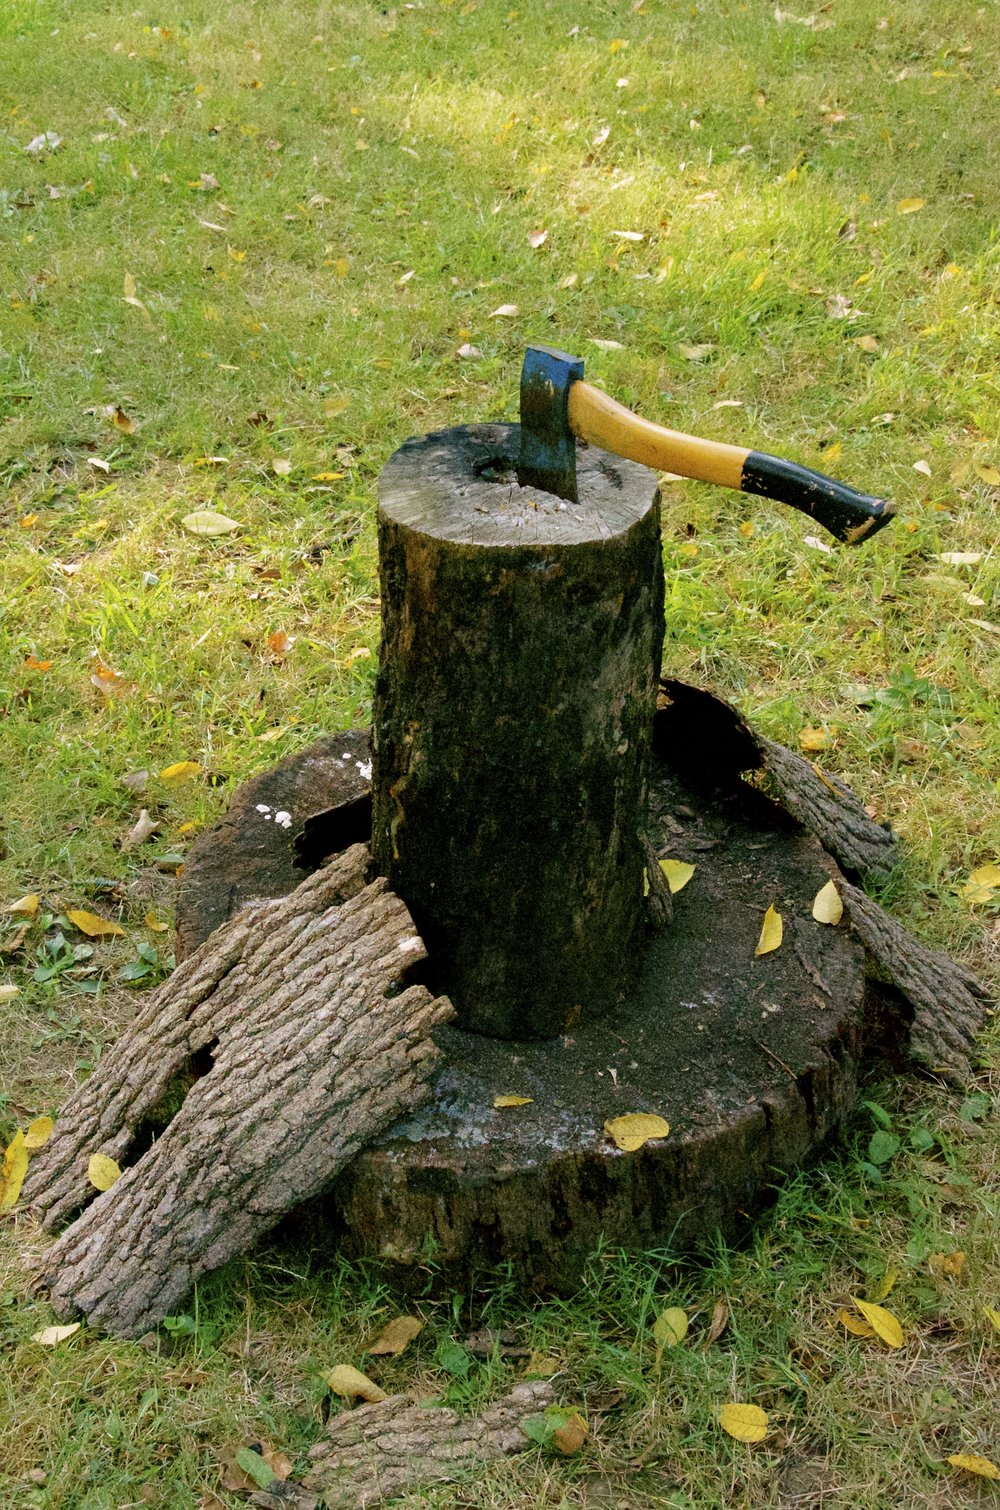 Axe in a stump